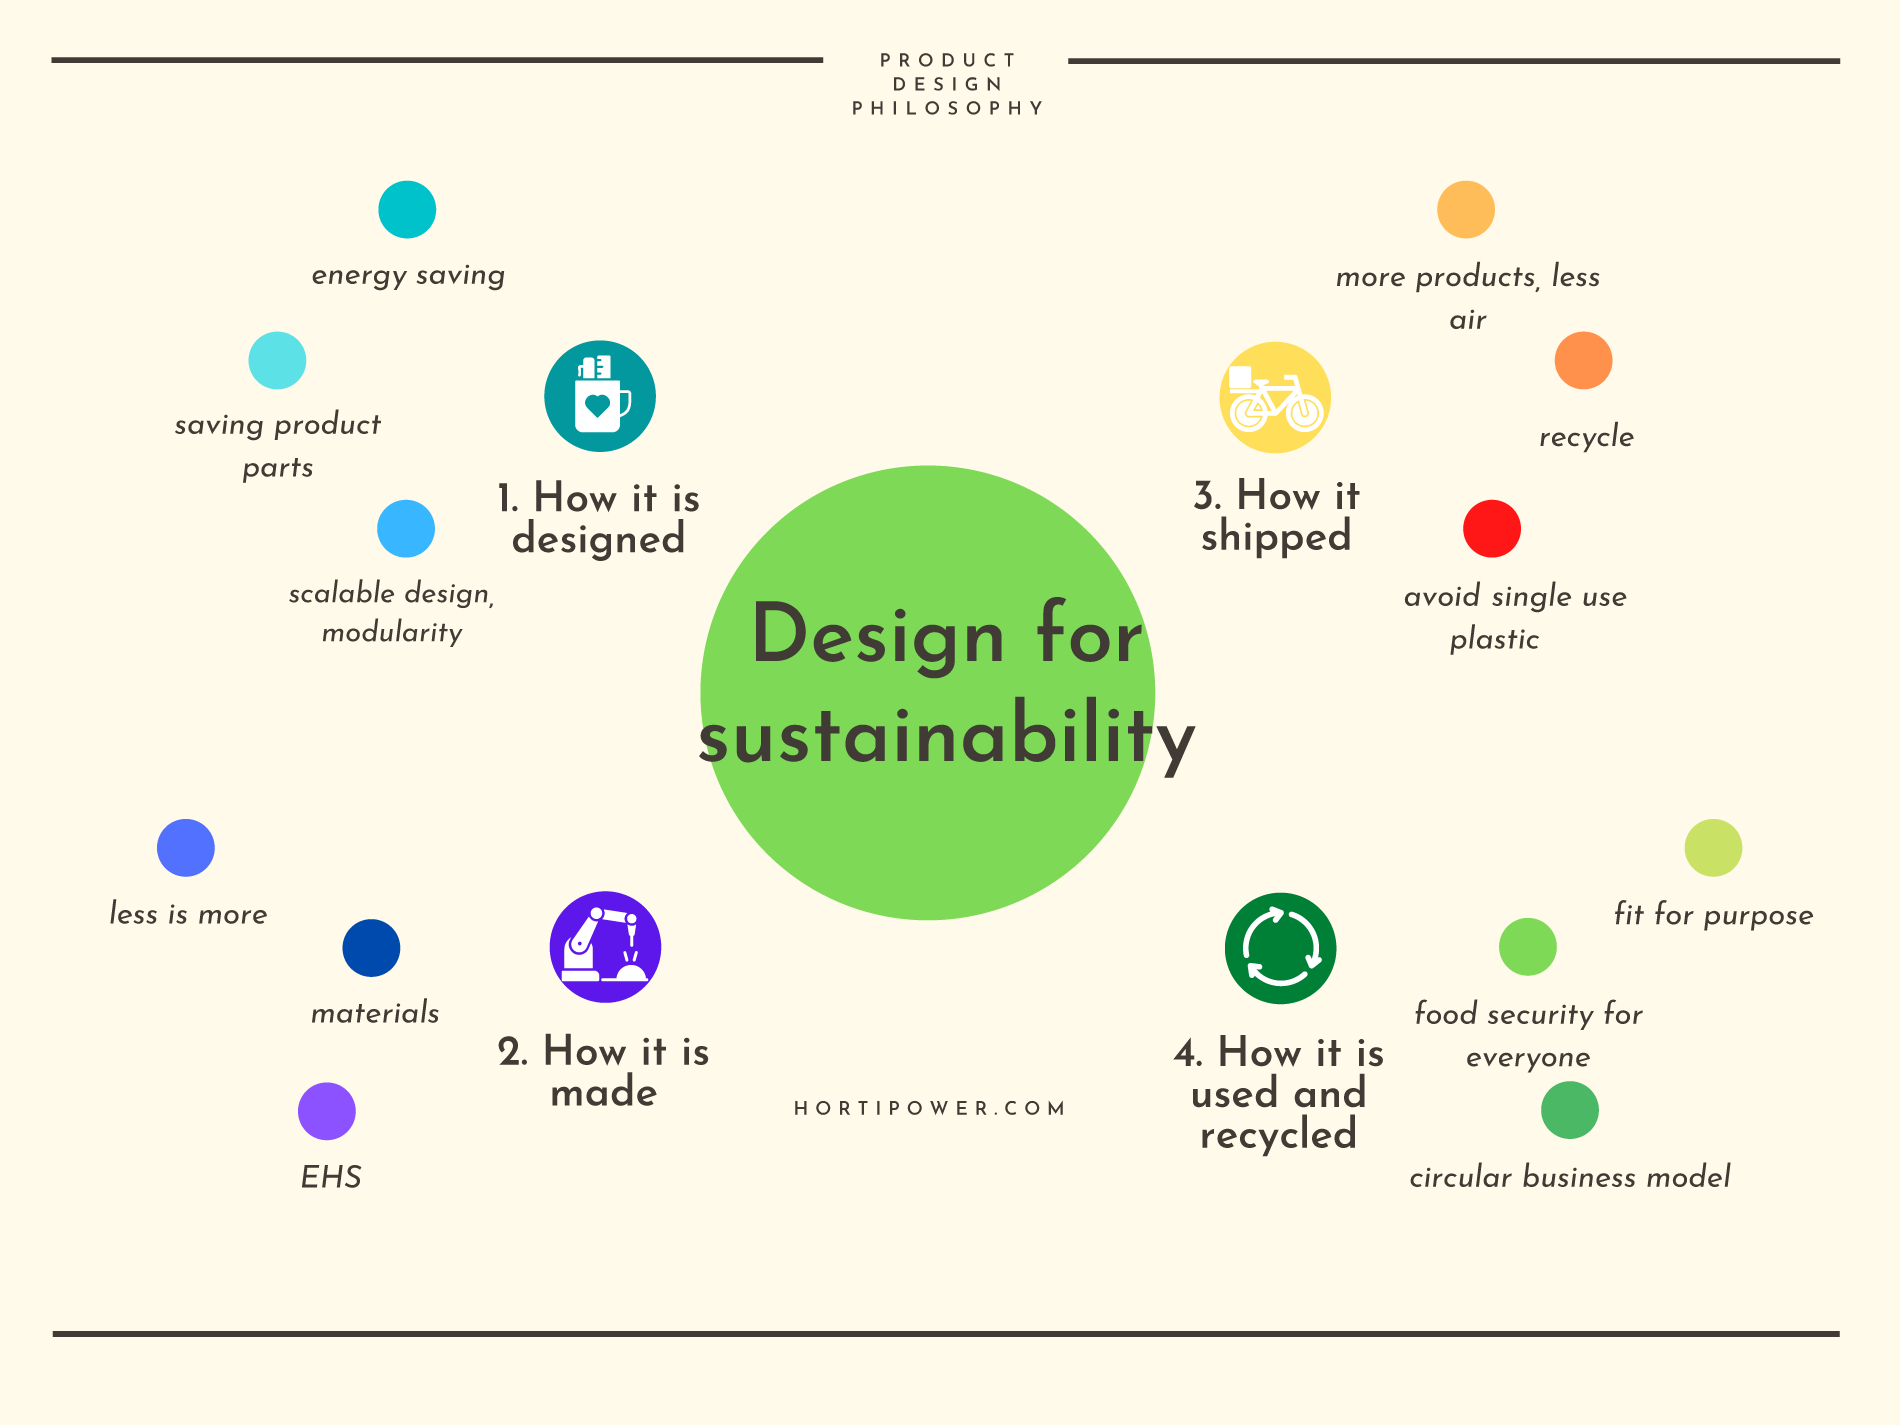 HortiPower Product design philosophy | Design for Sustainability